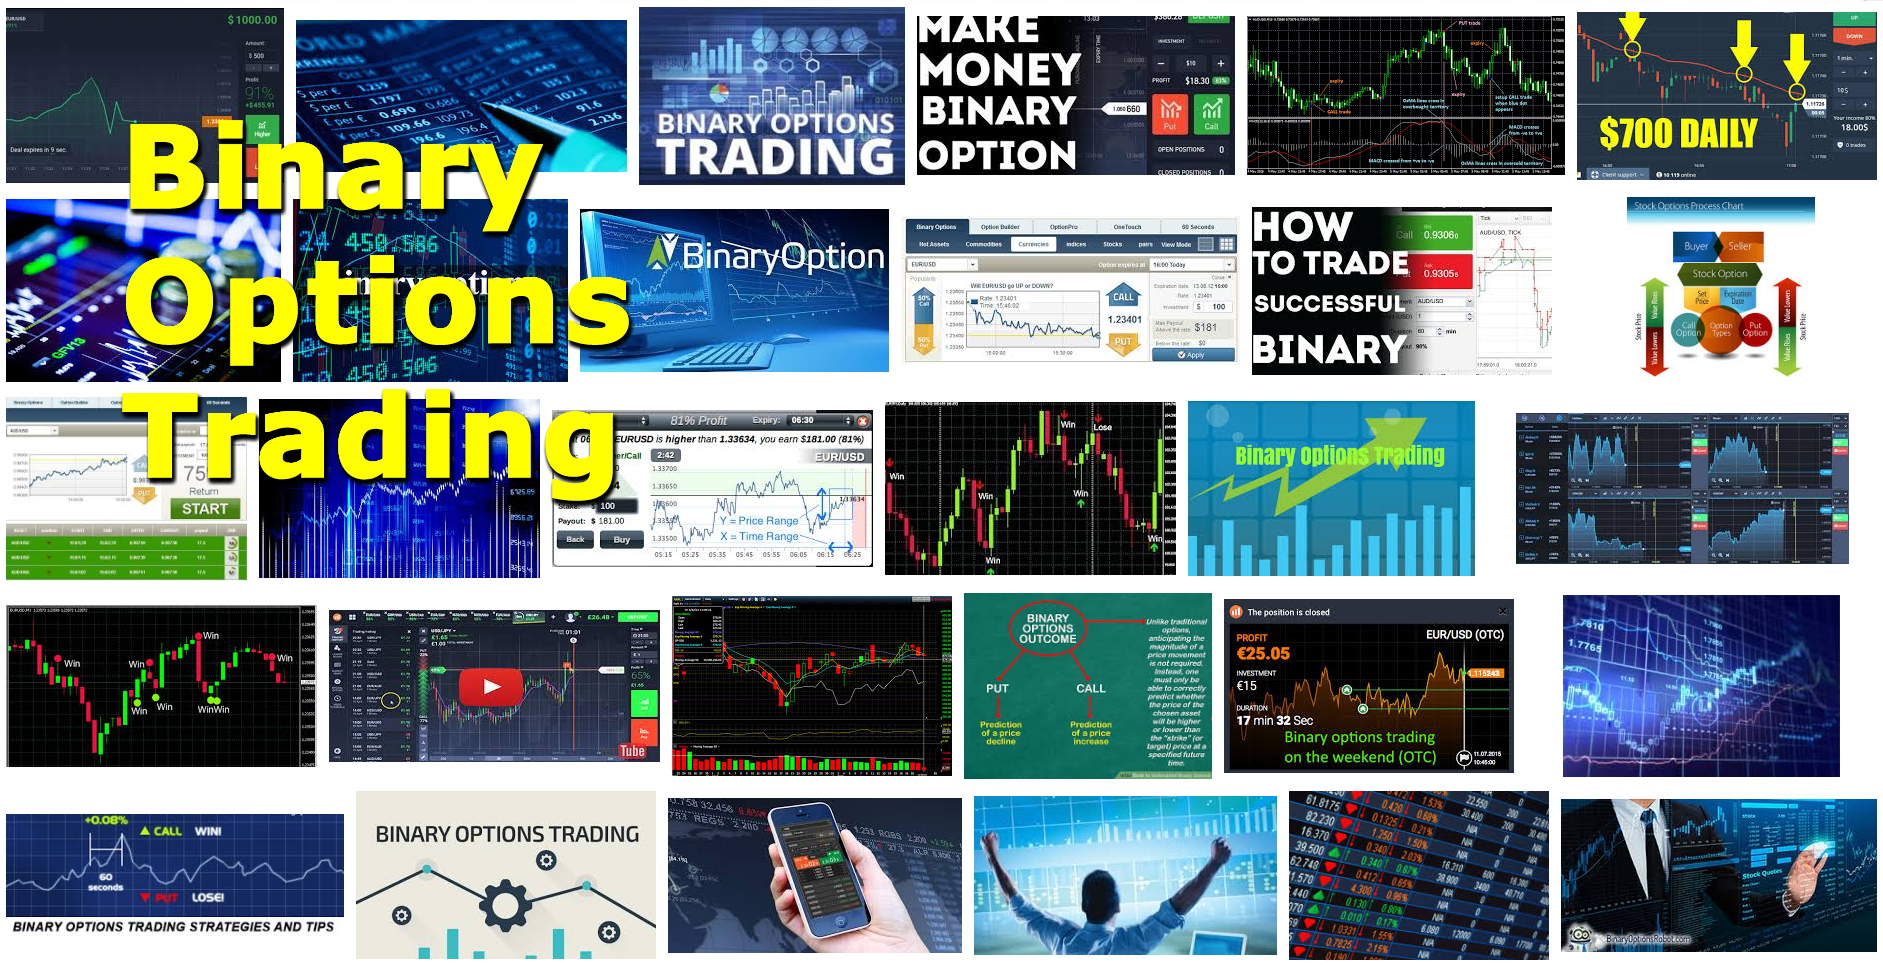 Does anyone make money with binary options